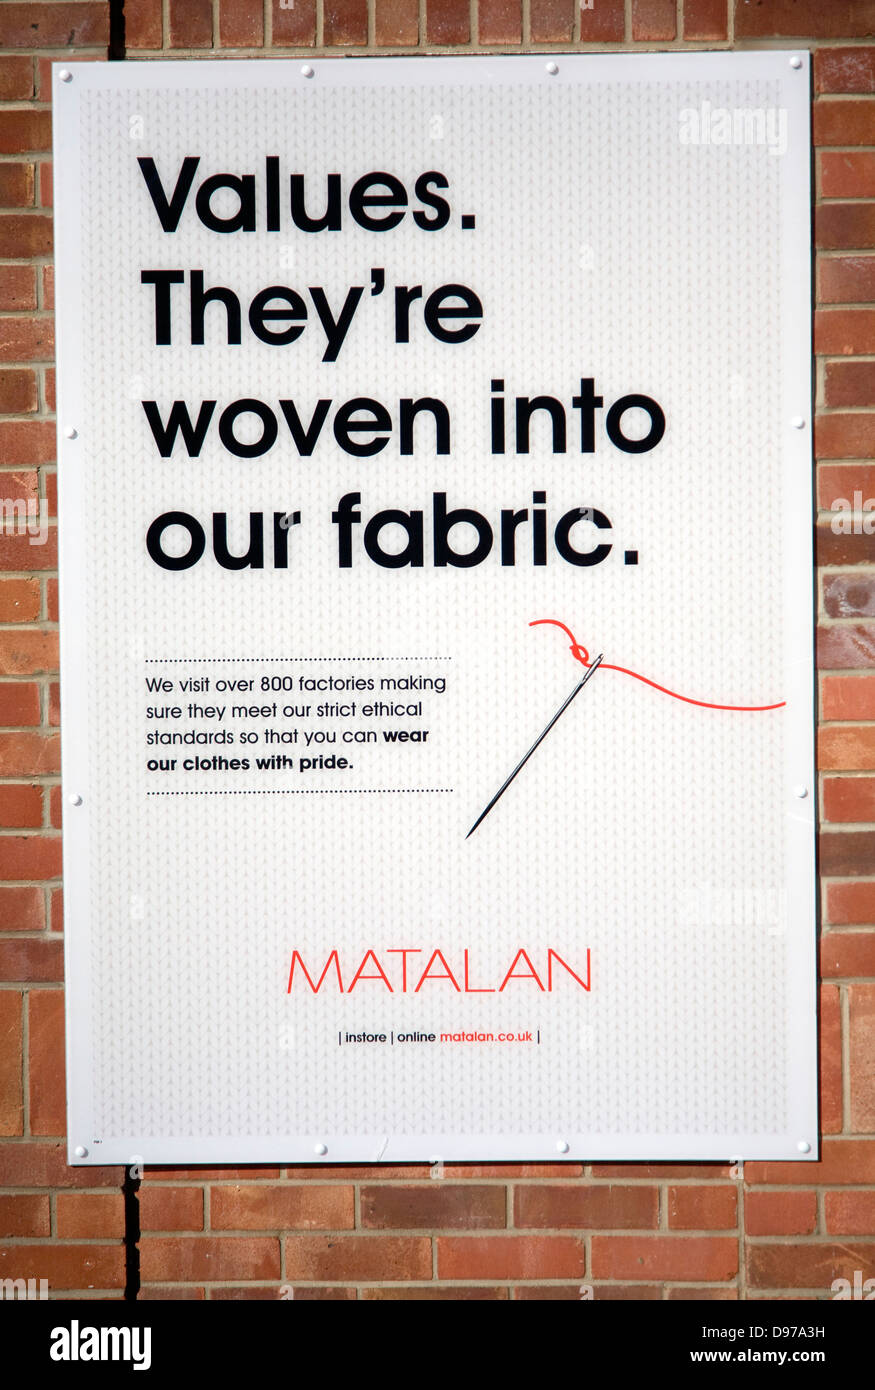 Matalan clothing company ethical standards values statement poster - Stock Image